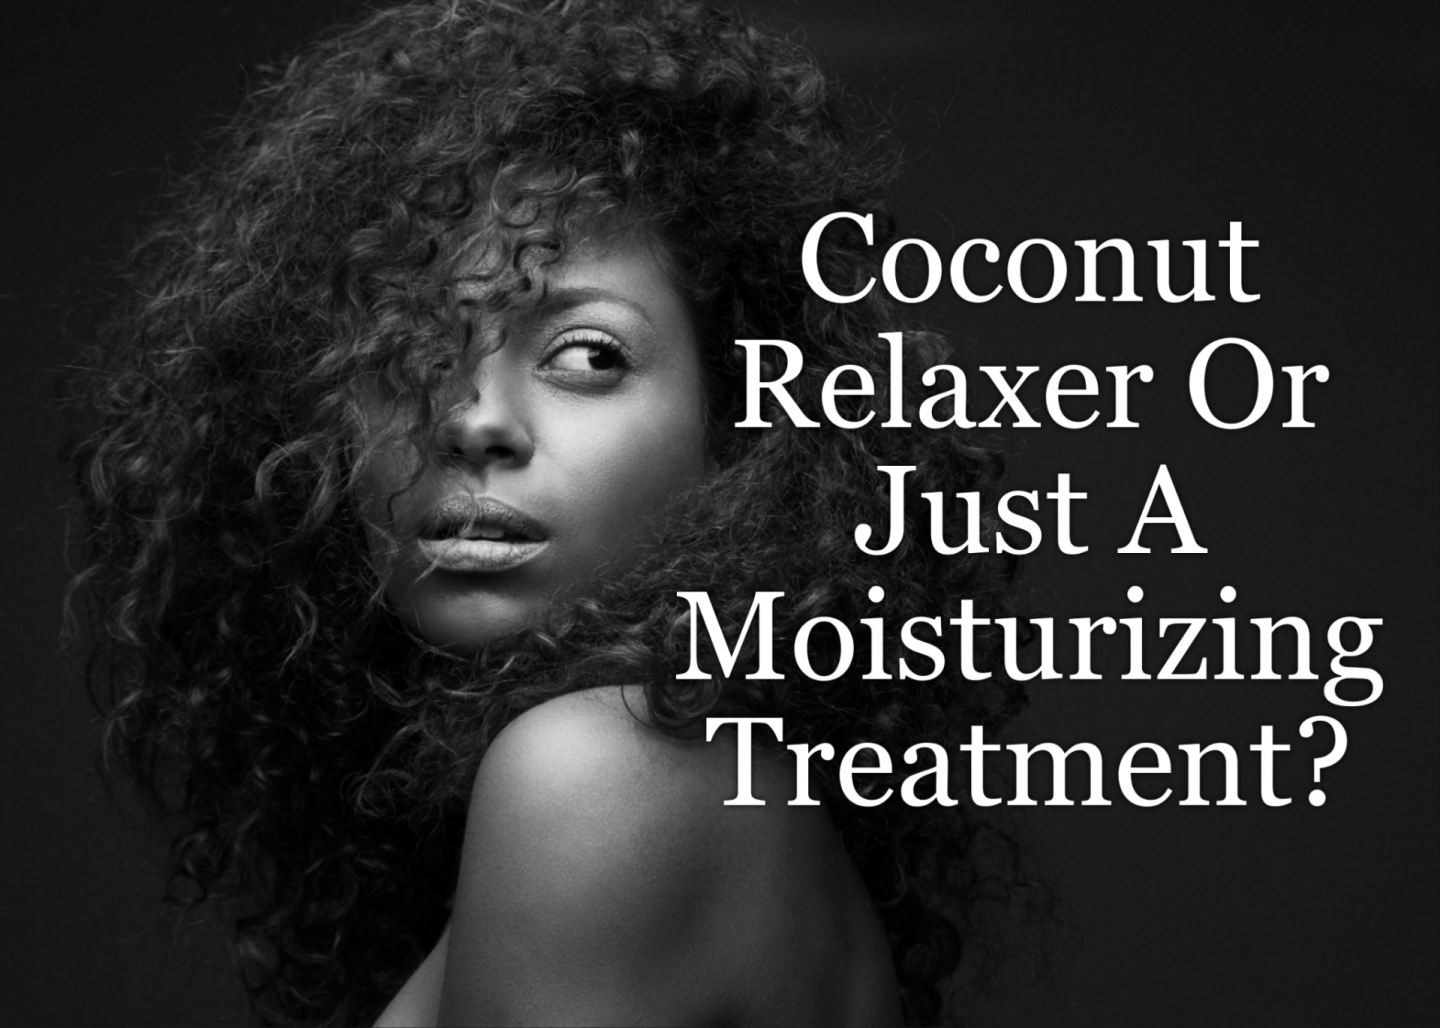 Coconut Relaxer Or Just A Moisturizing Treatment? This coconut relaxer is making rounds again in the natural hair community. Learn about it here.